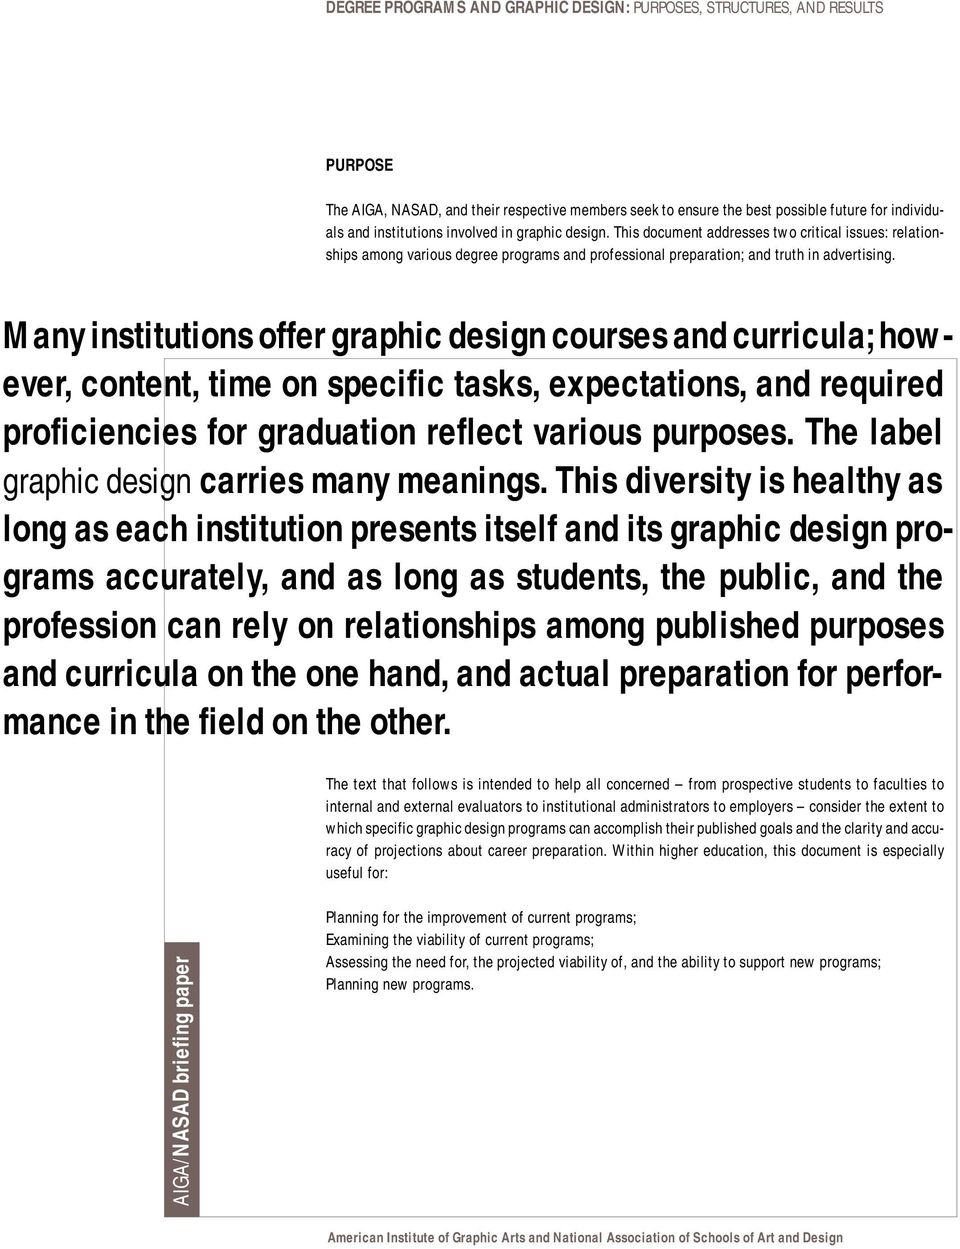 Many institutions offer graphic design courses and curricula; however, content, time on specific tasks, expectations, and required proficiencies for graduation reflect various purposes.